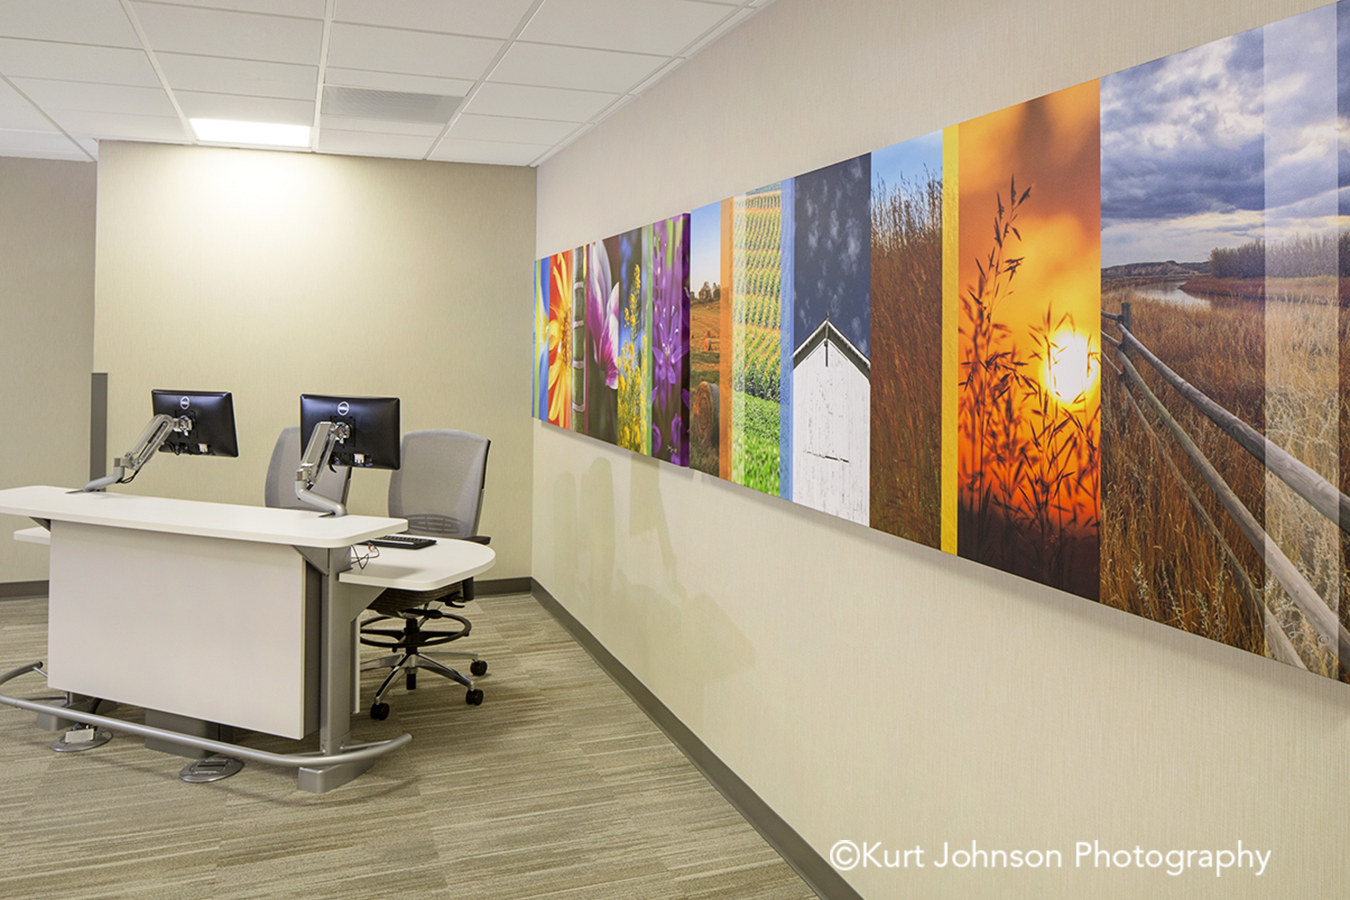 Lexington Regional Install gallery wrap wrapped canvas color slices flower grasses landscape botanical design healthcare installation reception desk lobby waiting